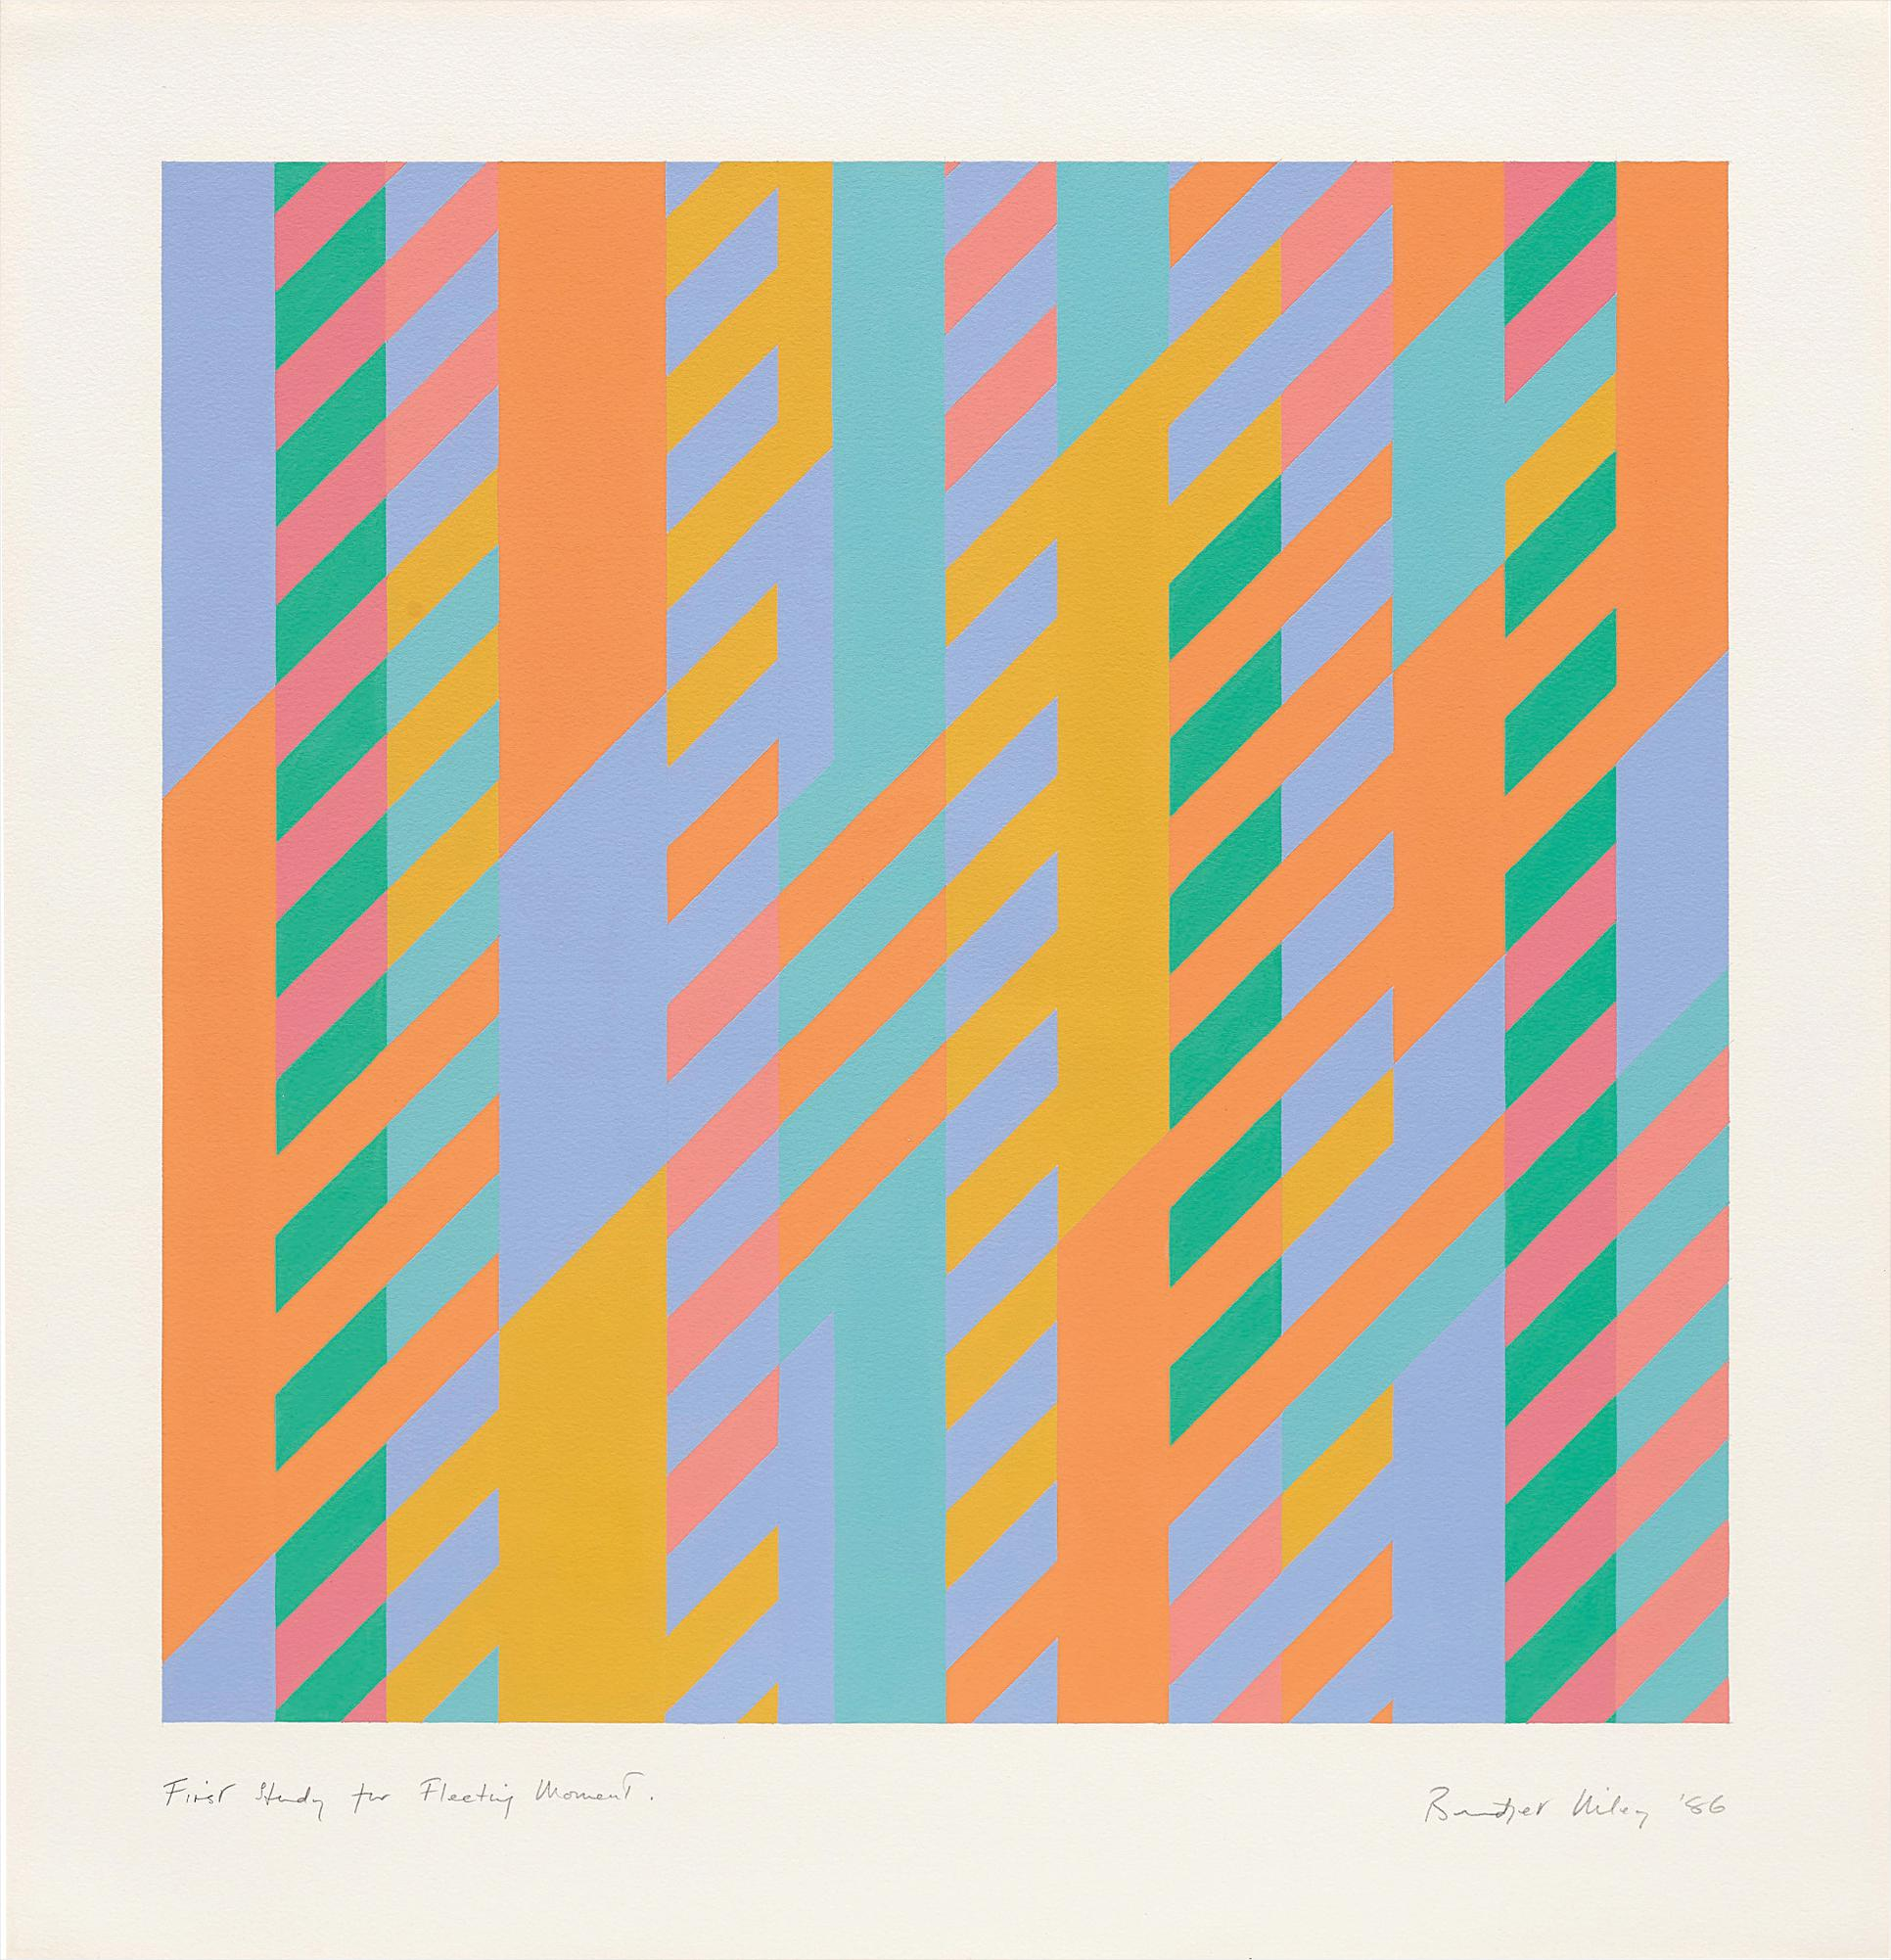 Bridget Riley-First Study For Fleeting Moment-1986